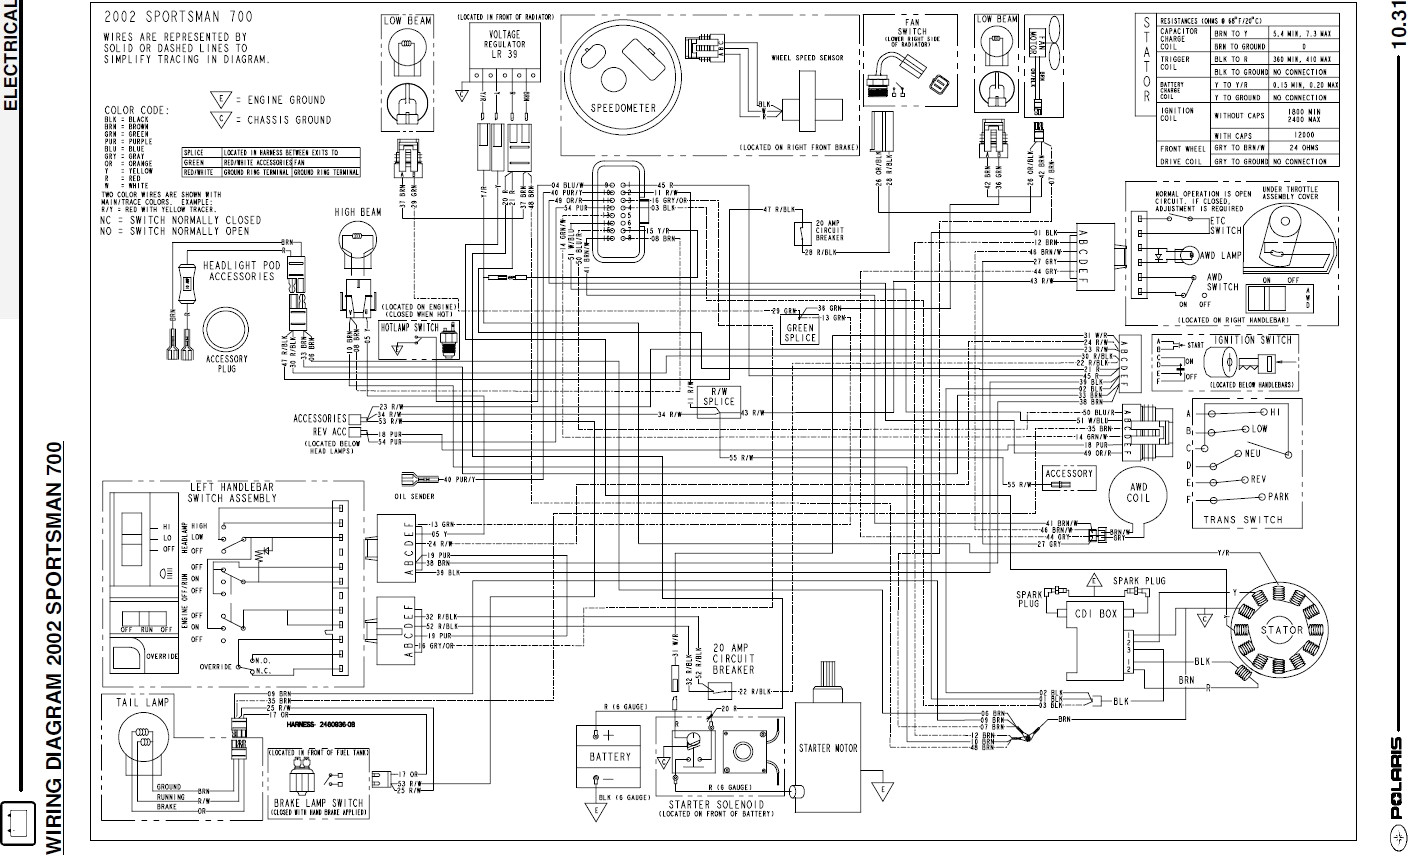 wiring diagram for 2007 polaris xp 700 ranger wiring diagram for 2012 polaris ranger 800 xp